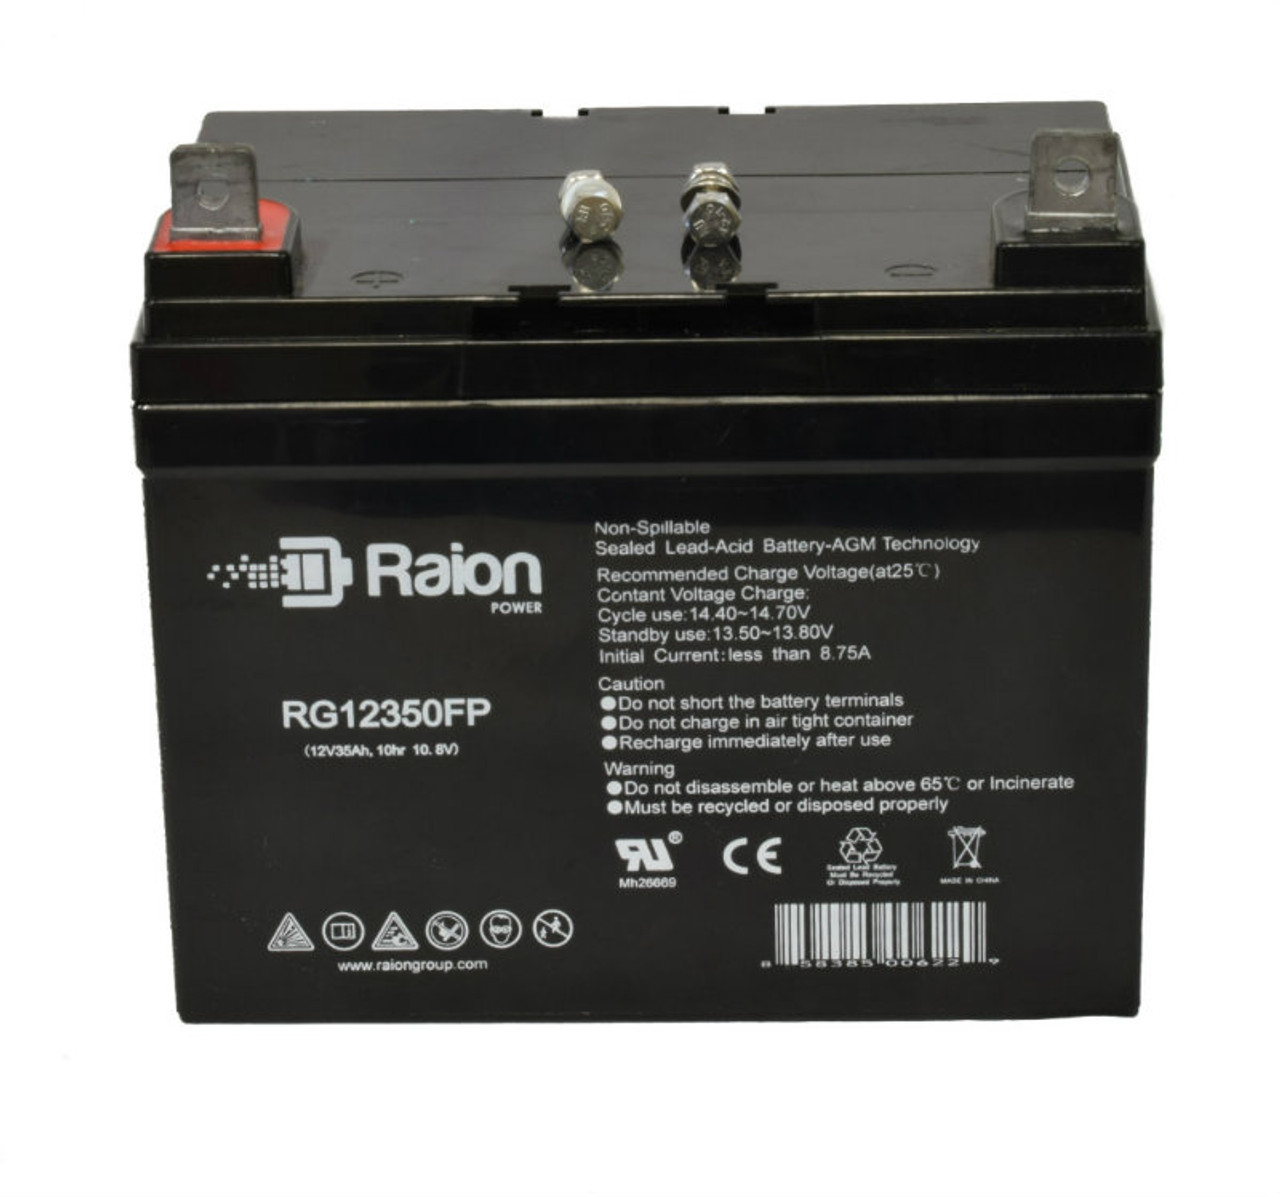 RG12350FP Sealed Lead Acid Battery Pack For Electric Mobility Rascal 302LE Candy Apple Mobility Scooter